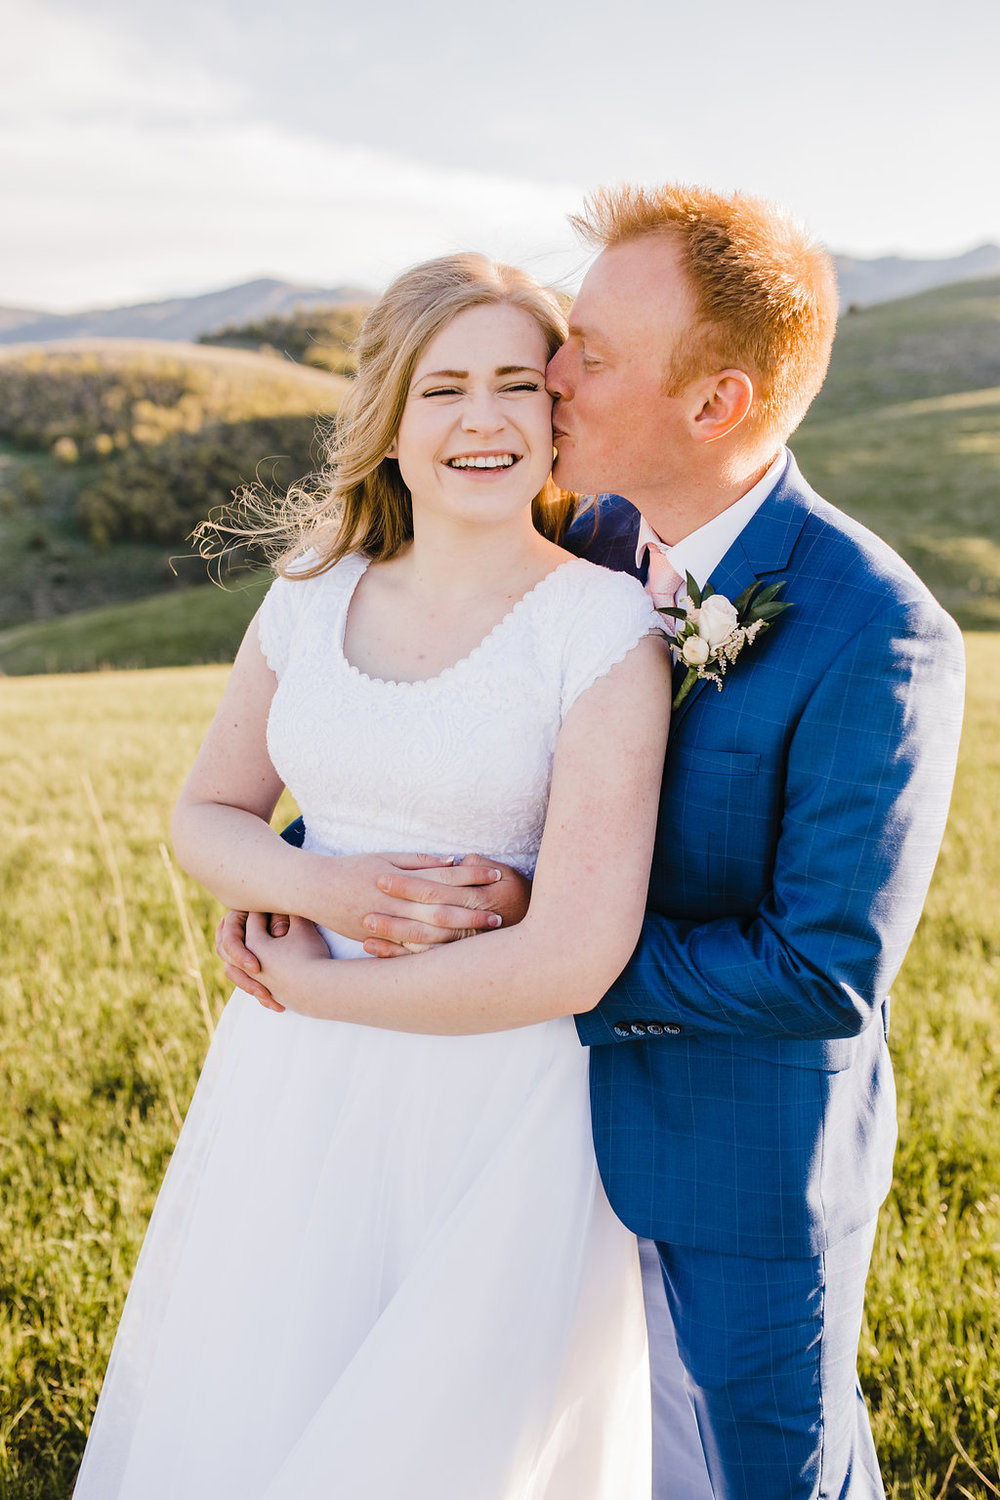 cache valley wedding photographer logan utah formals photography navy suit bride and groom lds couple romantic so in love